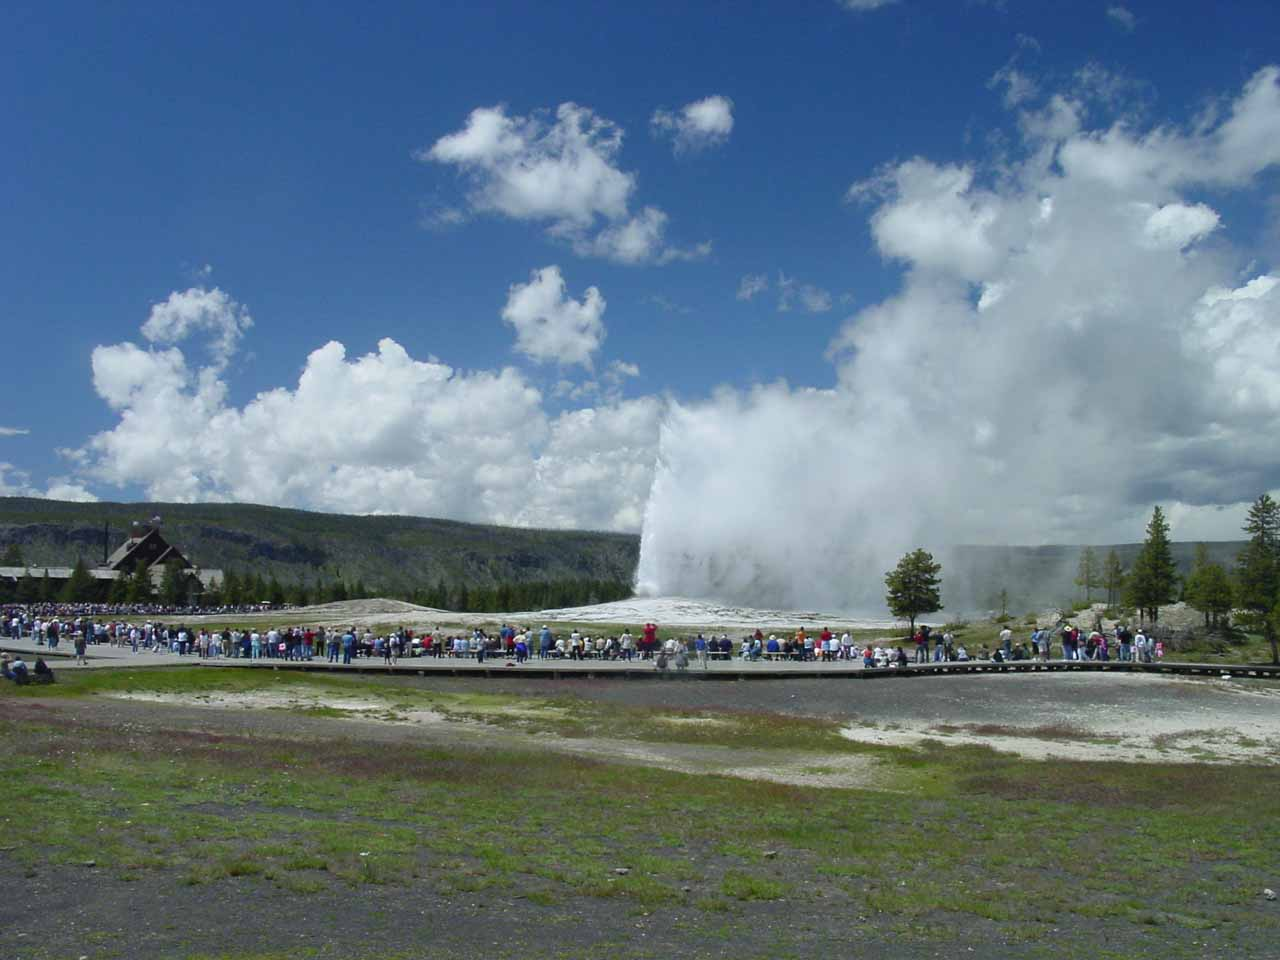 Distant view of the Old Faithful Geyser putting on a show in front of a crowd